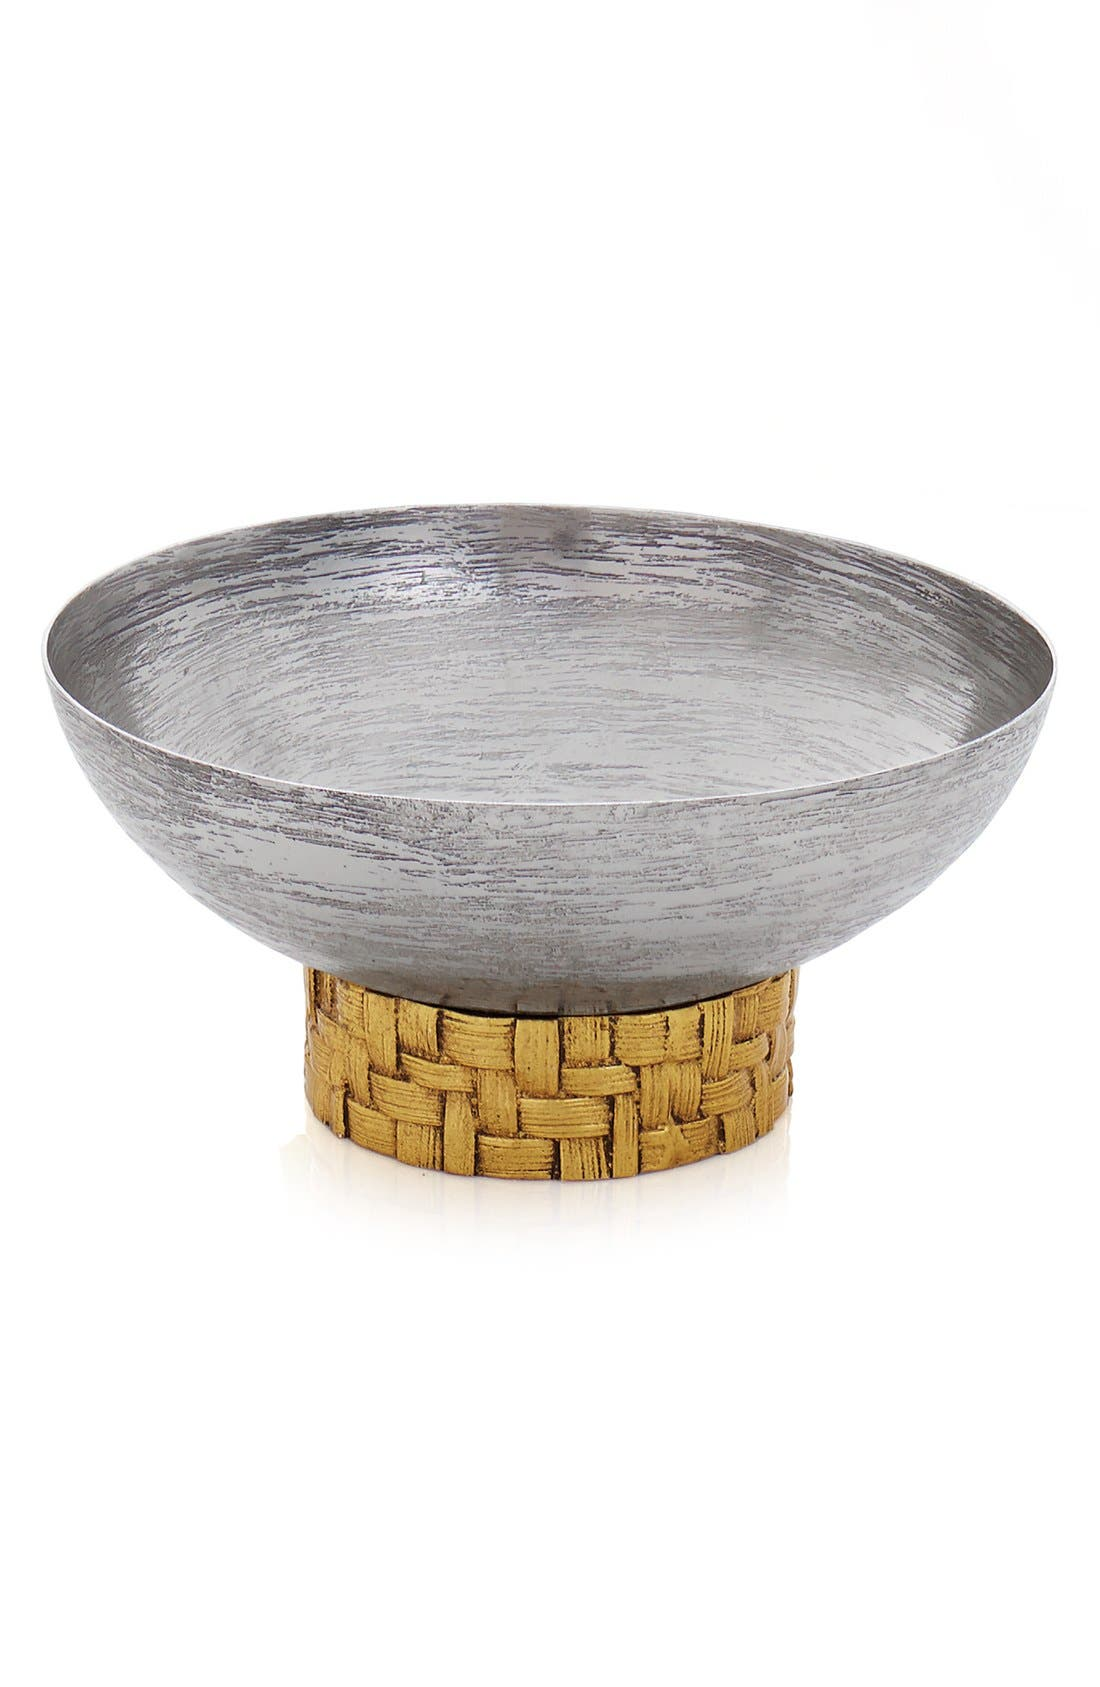 'Palm' Nut Bowl,                         Main,                         color, Metallic Silver